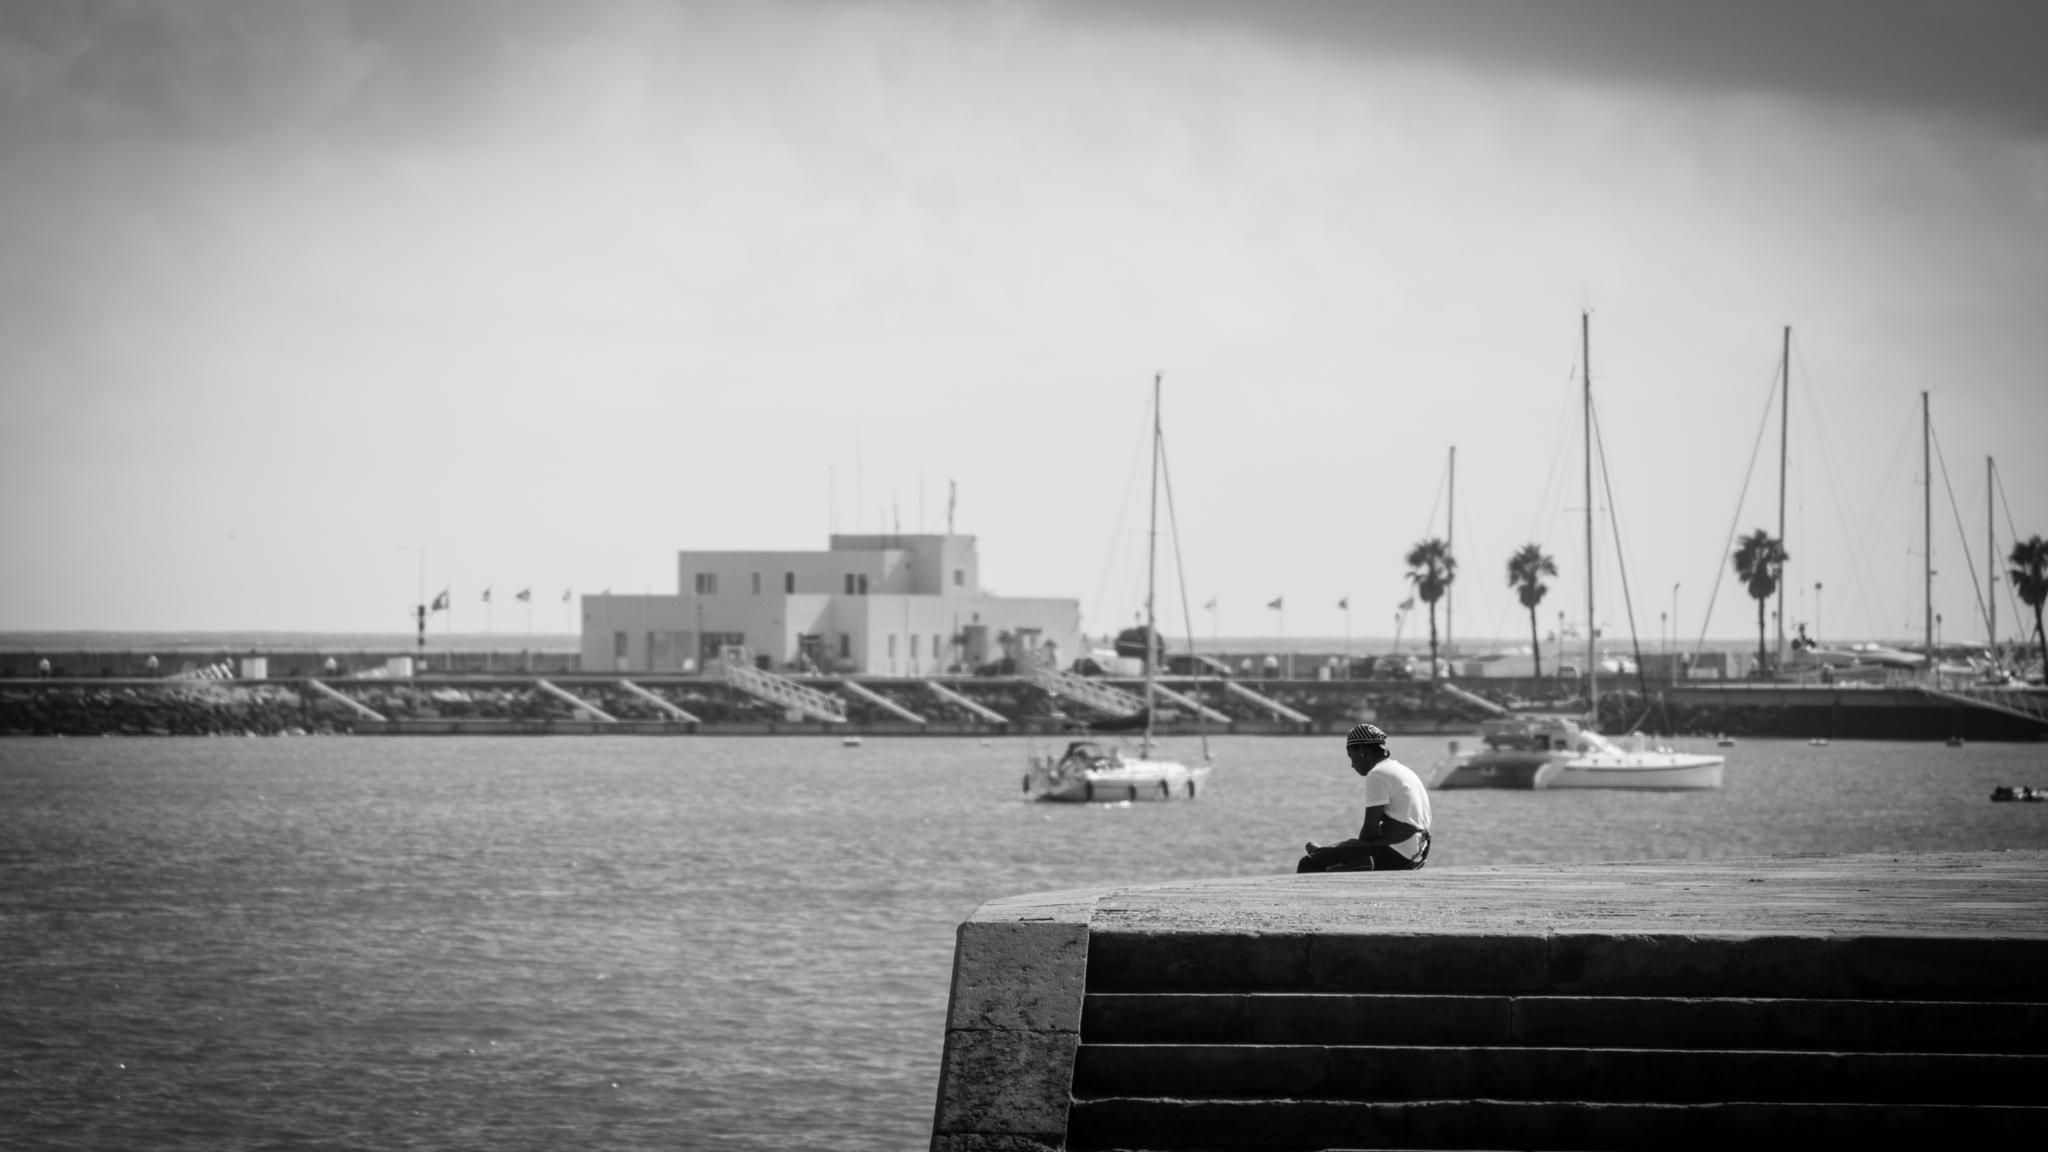 Lonely Man by jonathanr